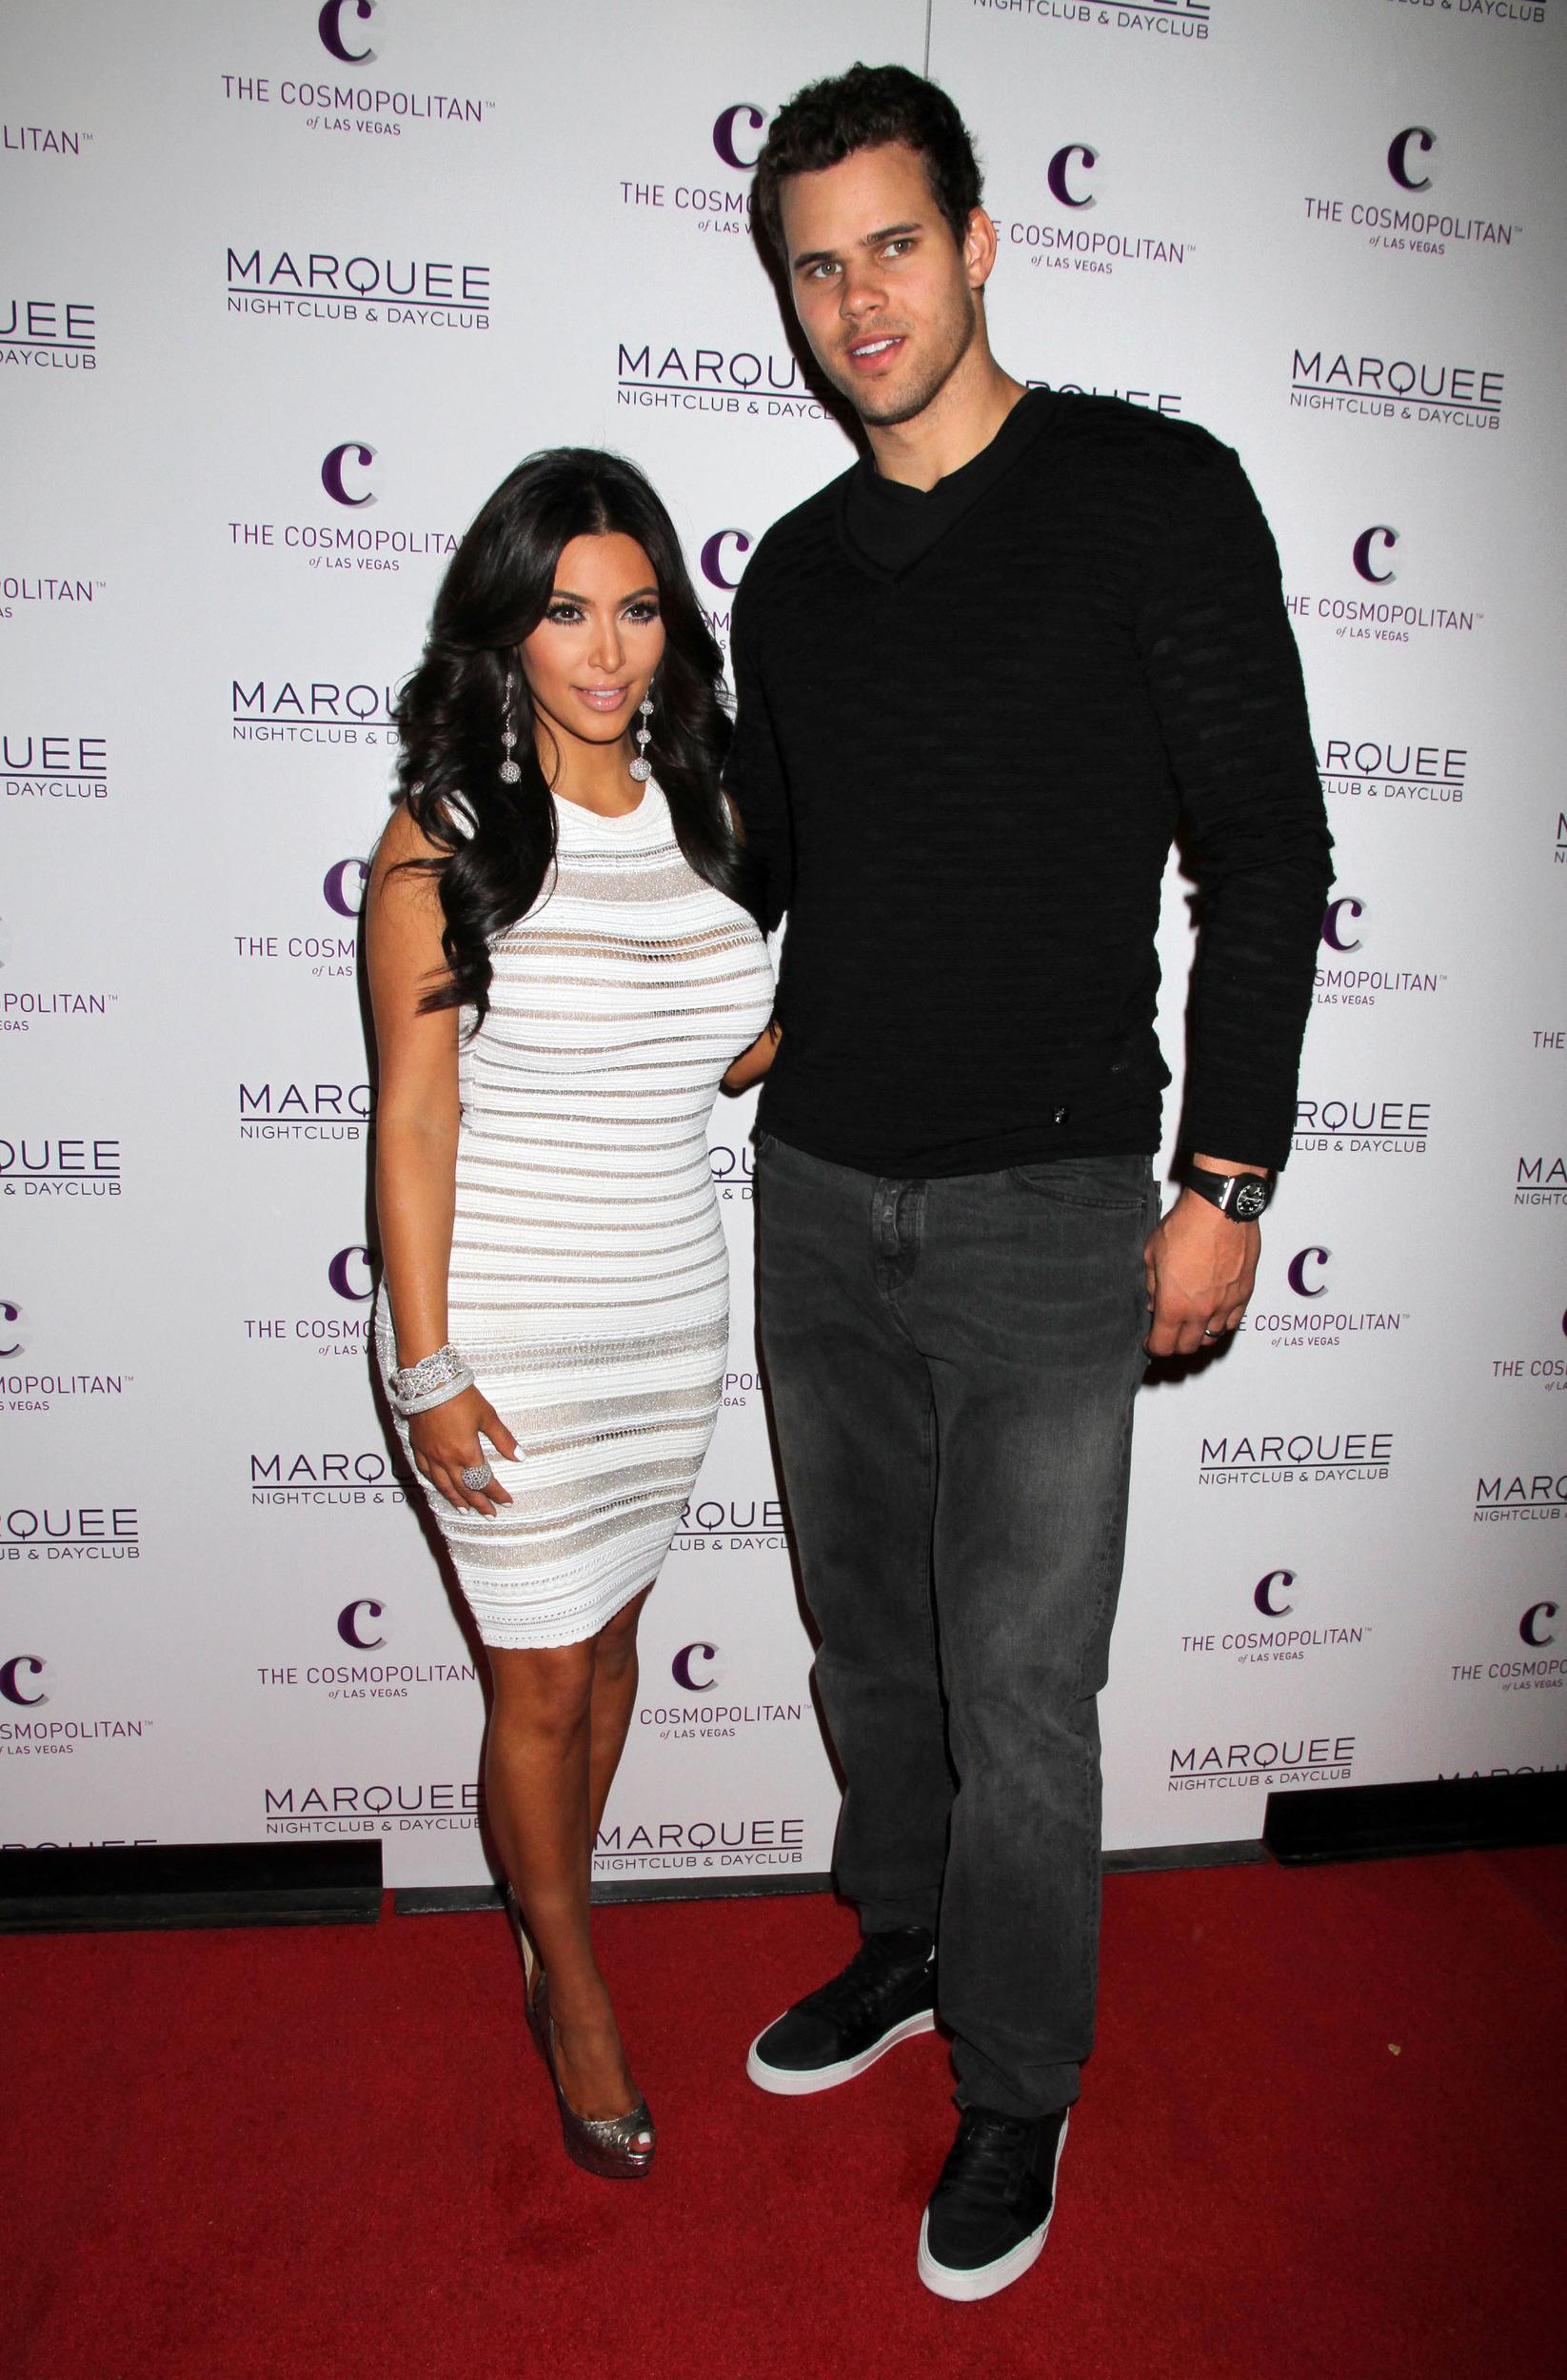 <br /> The reality star and the basketball star are the most extreme example on our list. They married in style in August 2011 - with a perfume launch designed to coincide with the day. The total cost was said to be $10 million, with much of the cost covered by a magazine deal and individual arrangements with suppliers - including a $20,000 Vera Wang dress and a $6,000 cake. Their marriage lasted 72 days before she filed for divorce because of irreconcilable differences.